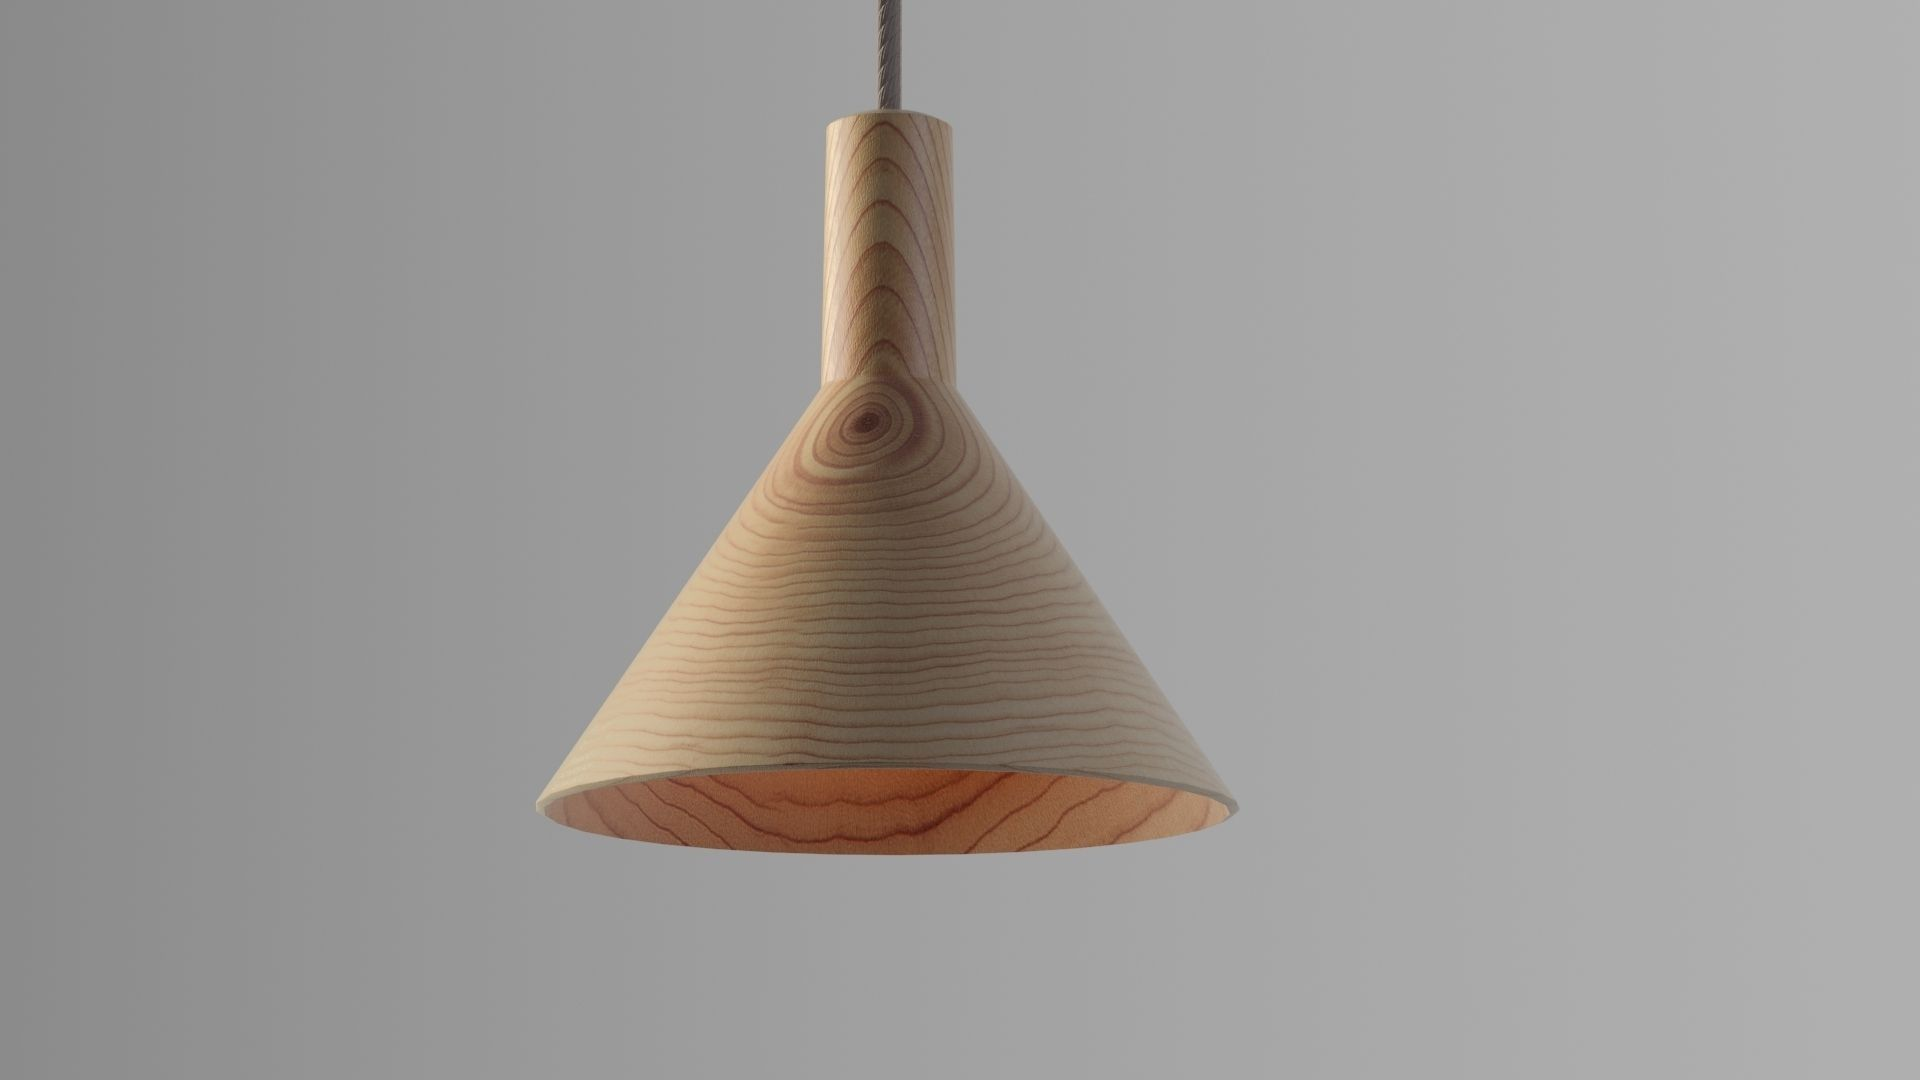 Wooden Light Pendants Wooden Light Pendants Collection Vol 1 3d Model Max Obj